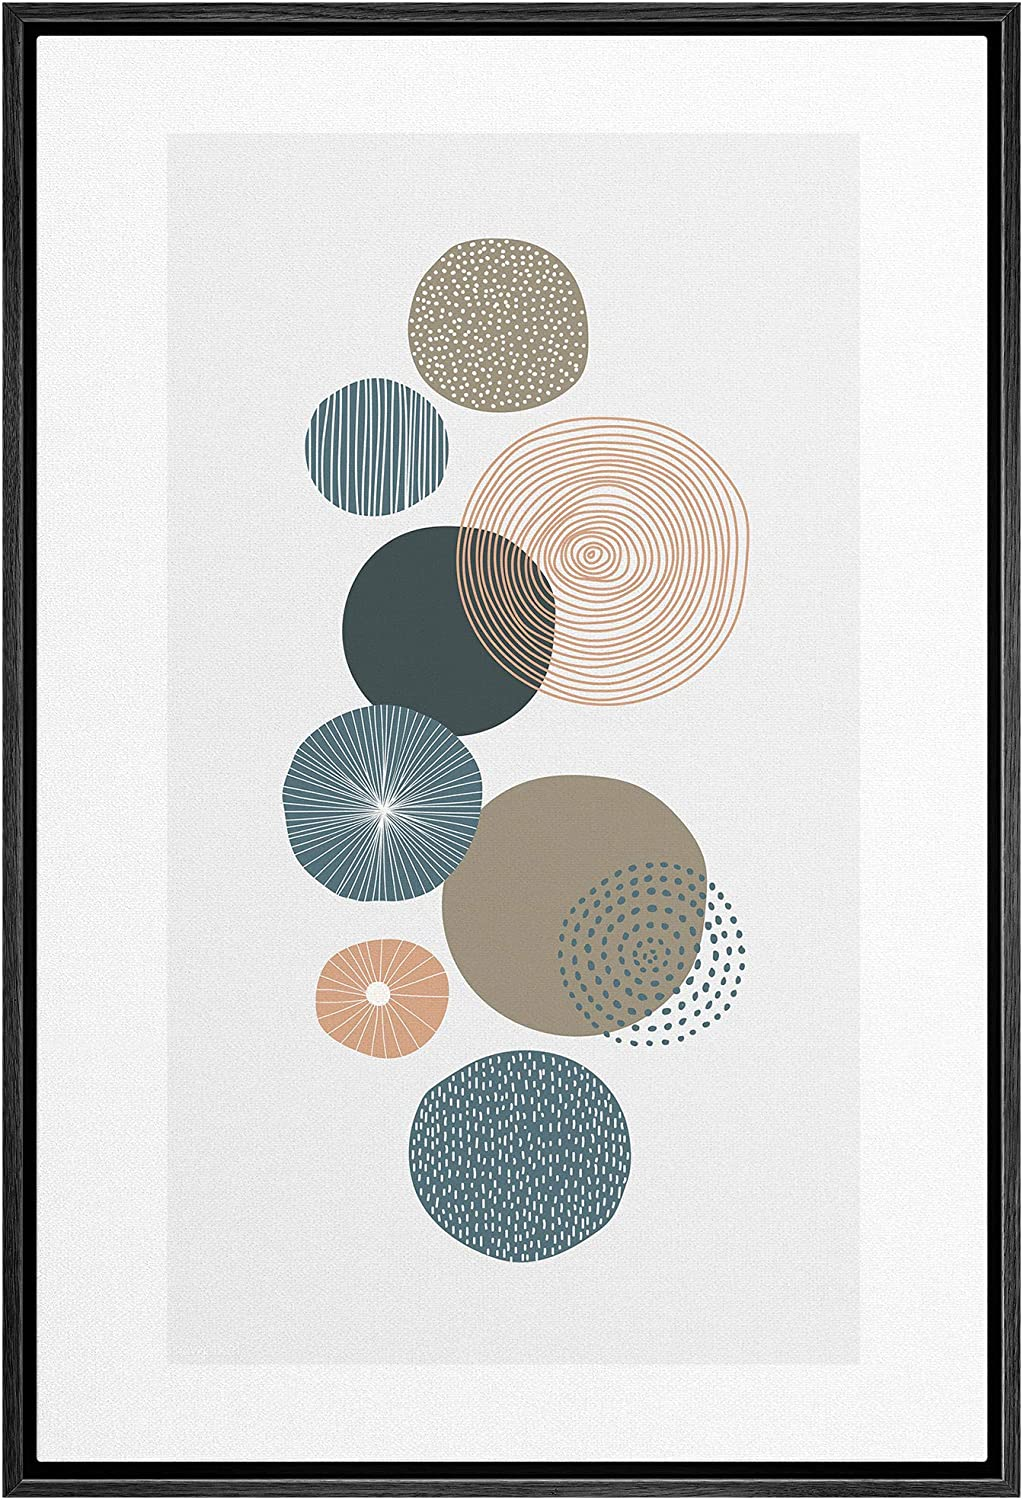 IDEA4WALL Framed Canvas Print Wall Art Striped, Spiral & Dotted Circle Variety Geometric Shapes Illustrations Modern Art Mid-Century Modern Ultra for Living Room, Bedroom, Office - 16